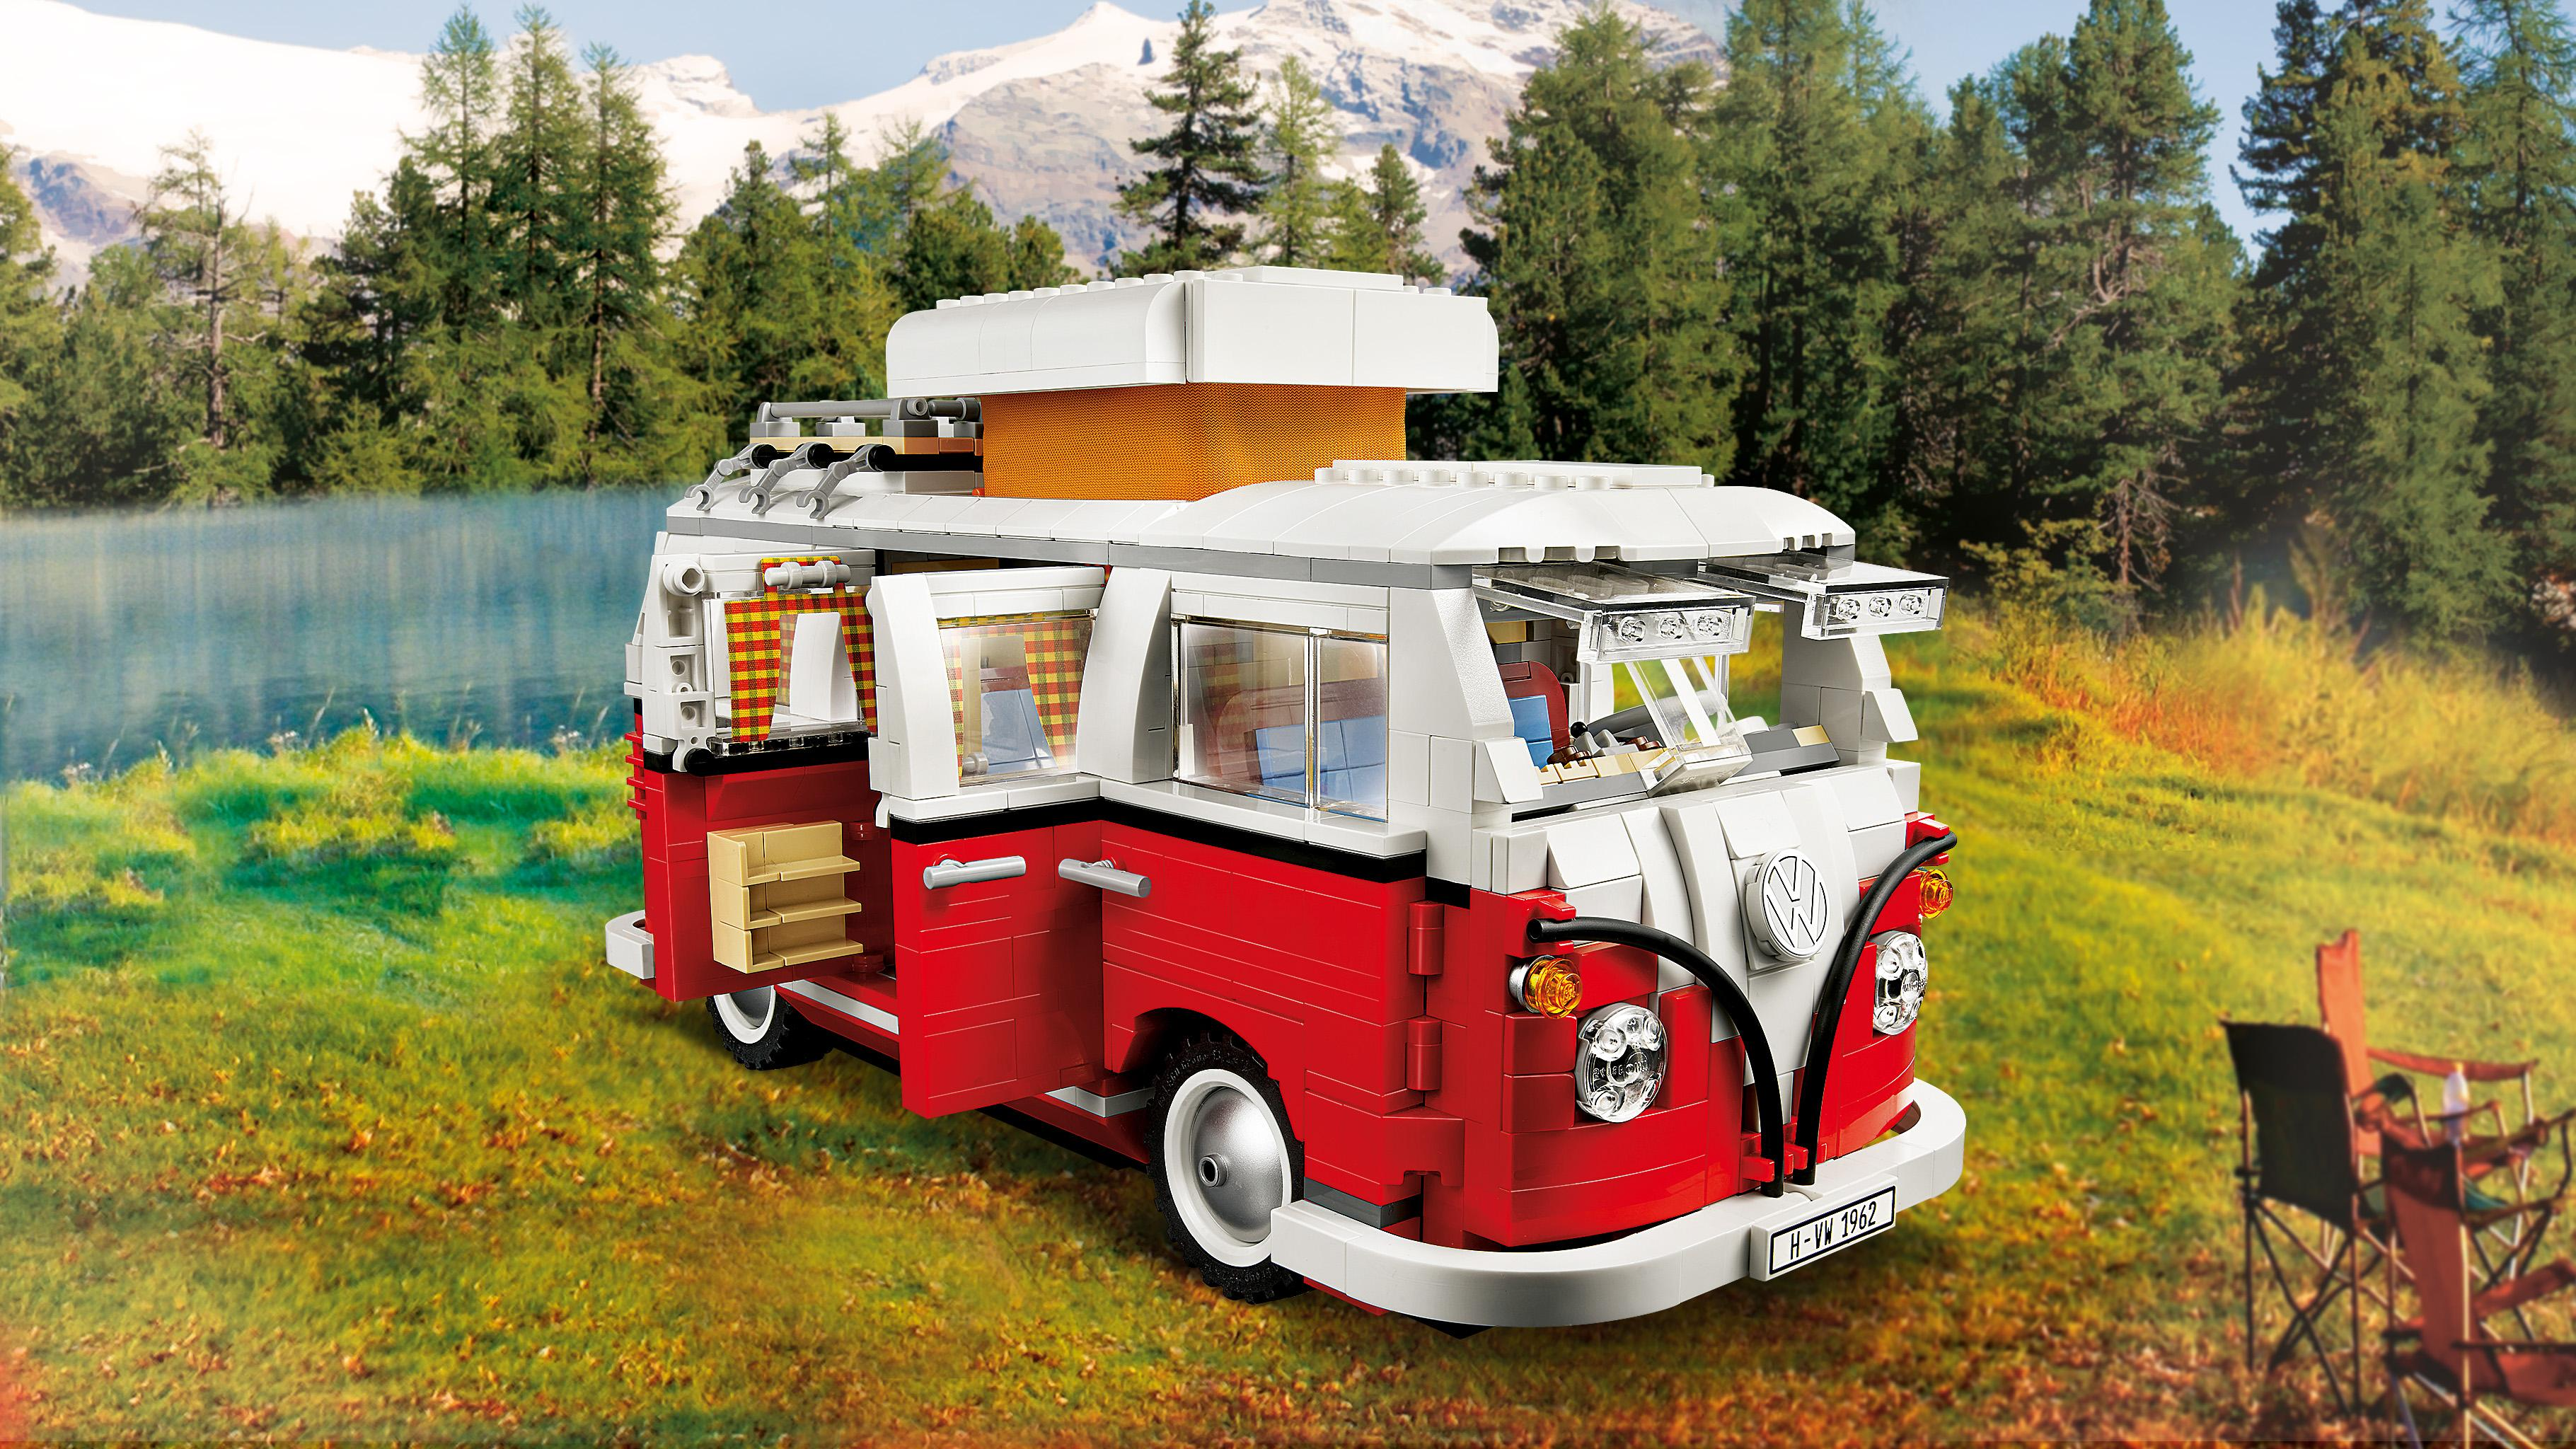 lego creator volkswagen t1 camper van 10220 ebay. Black Bedroom Furniture Sets. Home Design Ideas